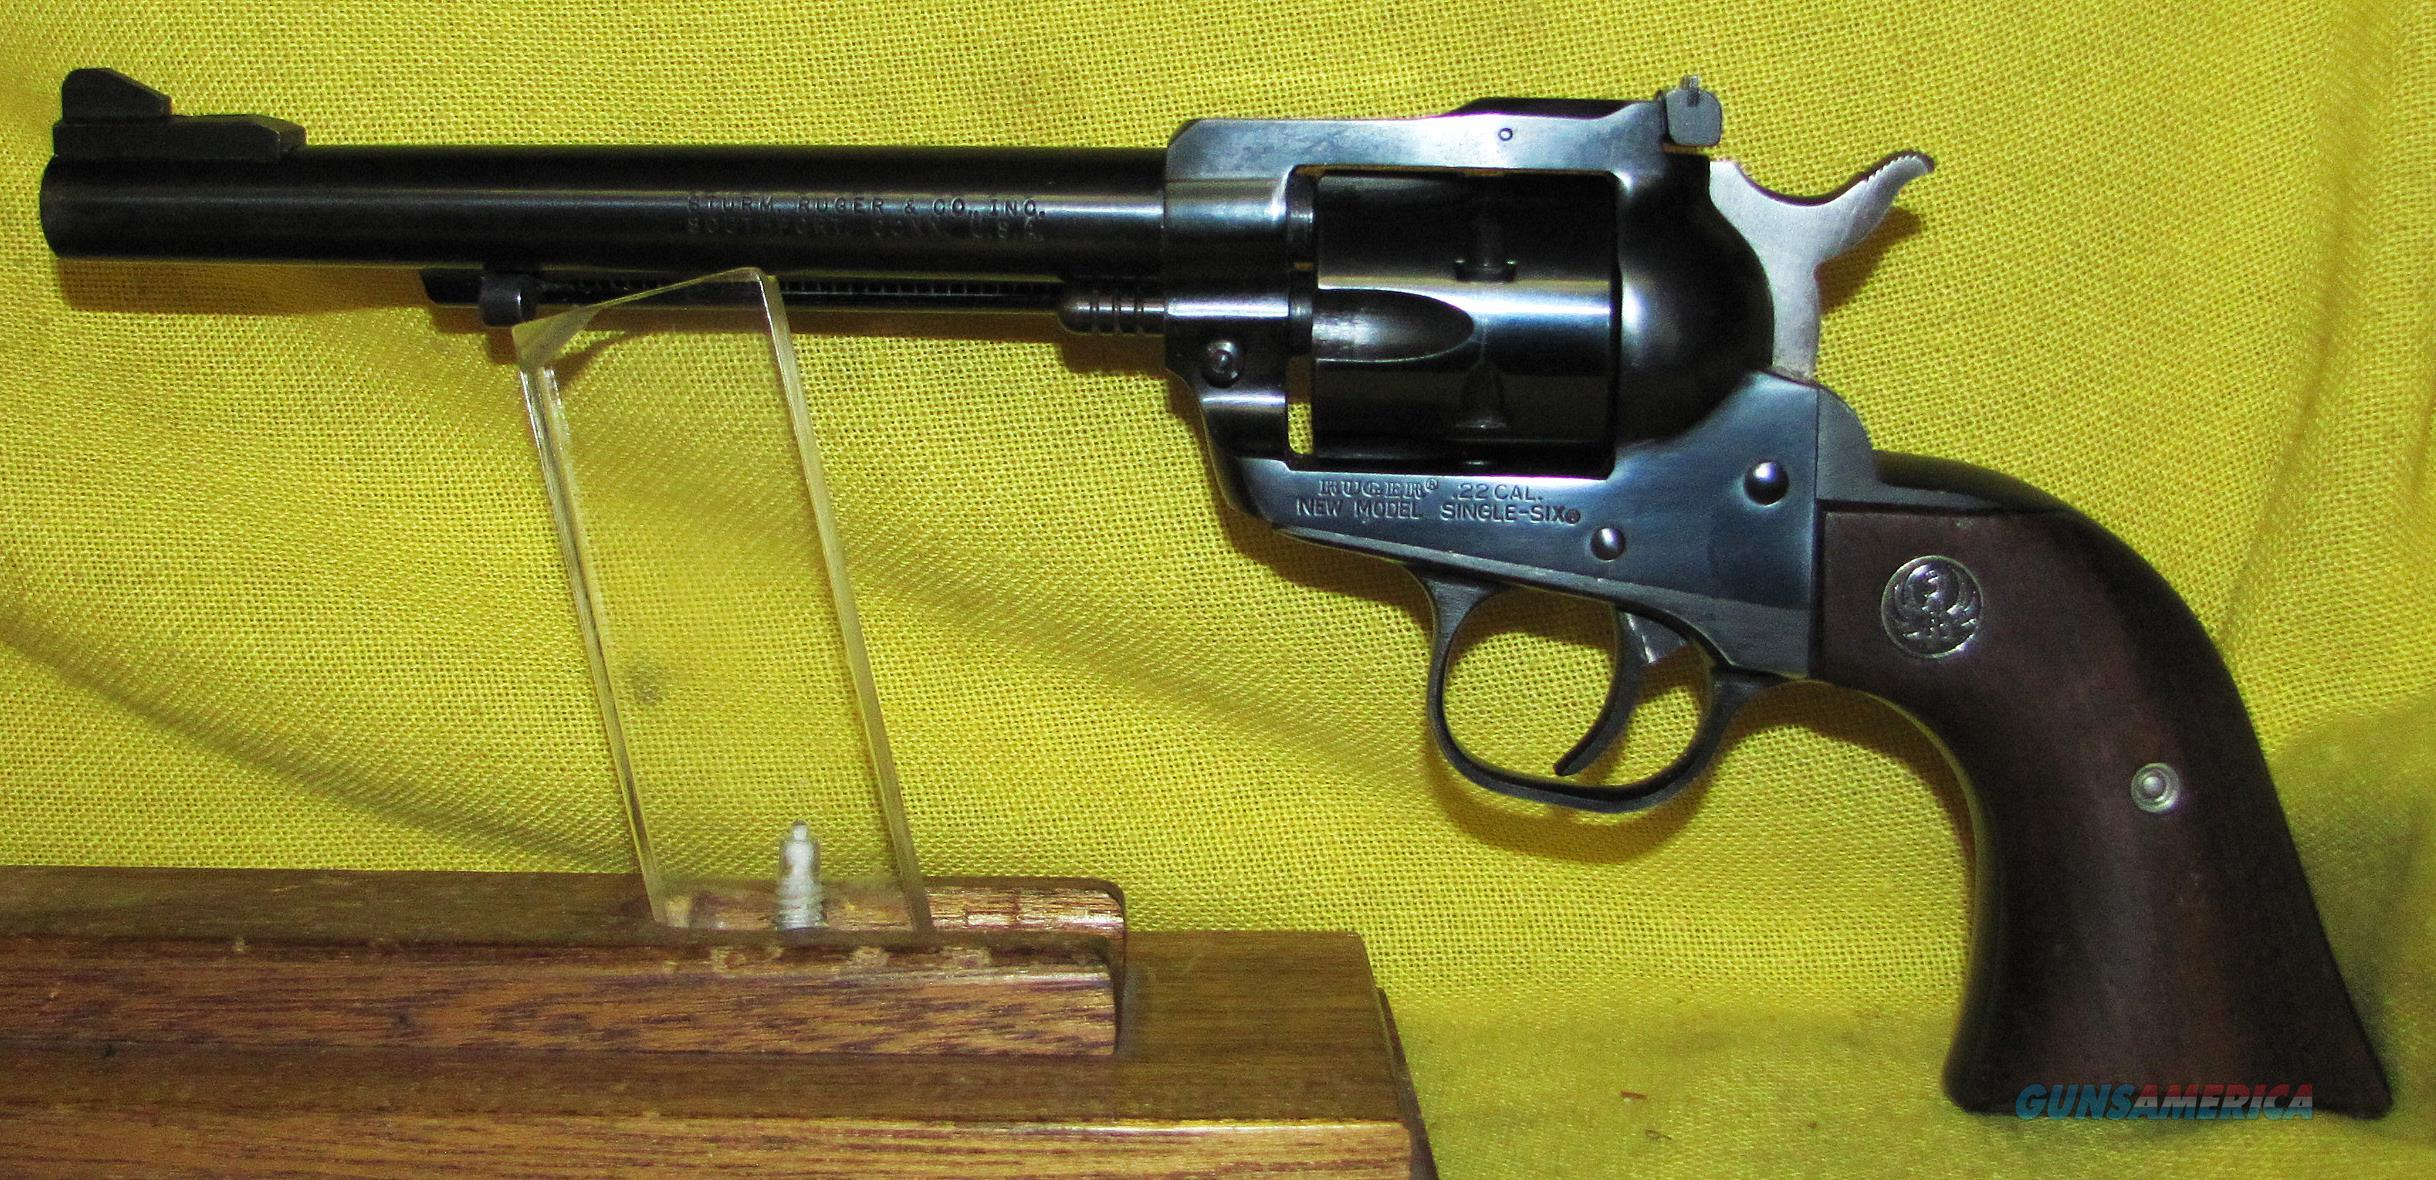 RUGER SINGLE SIX (PRE-WARNING)  Guns > Pistols > Ruger Single Action Revolvers > Single Six Type